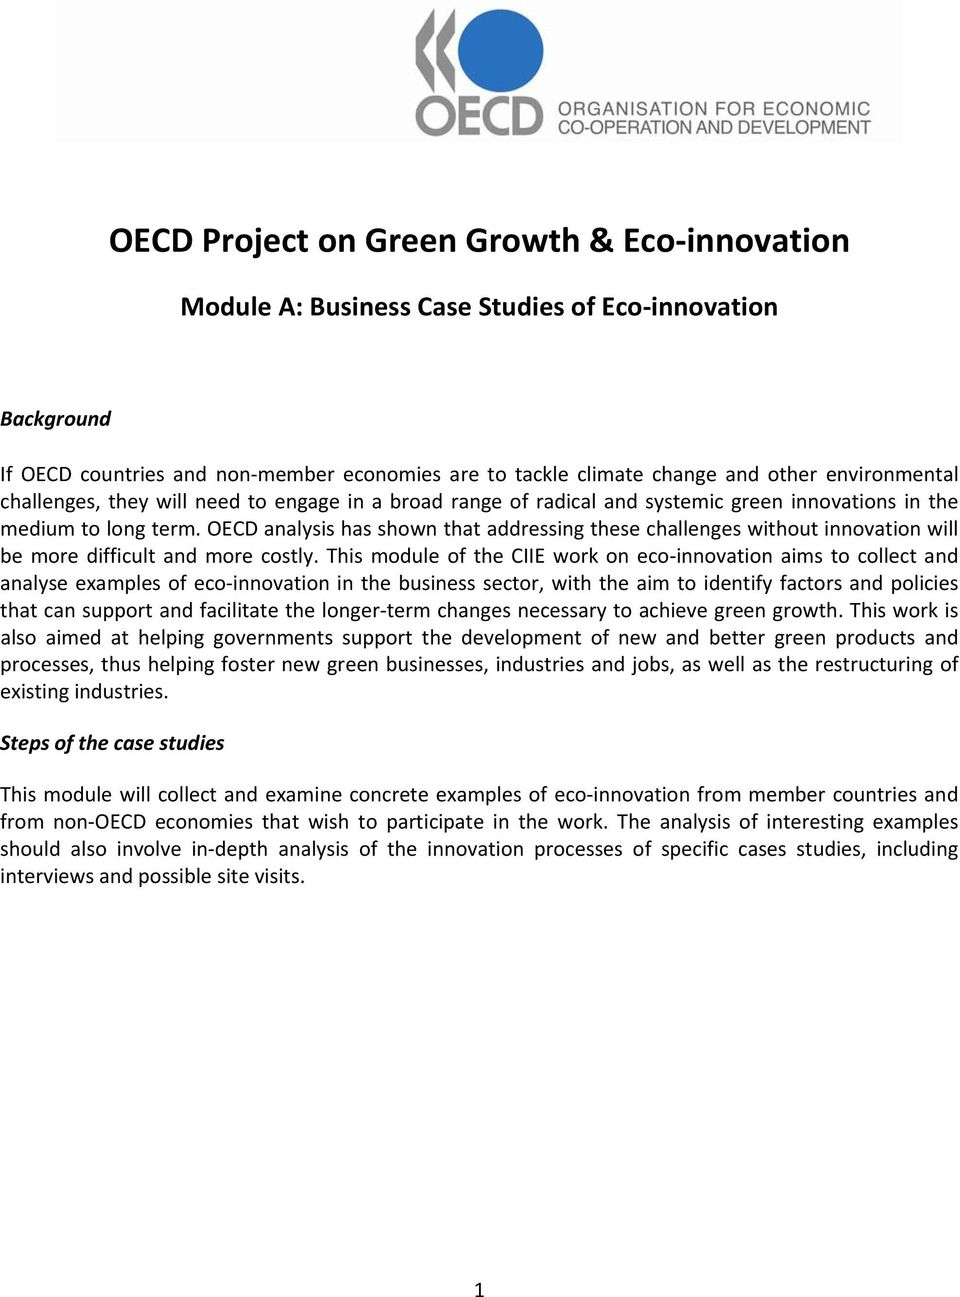 OECD analysis has shown that addressing these challenges without innovation will be more difficult and more costly.